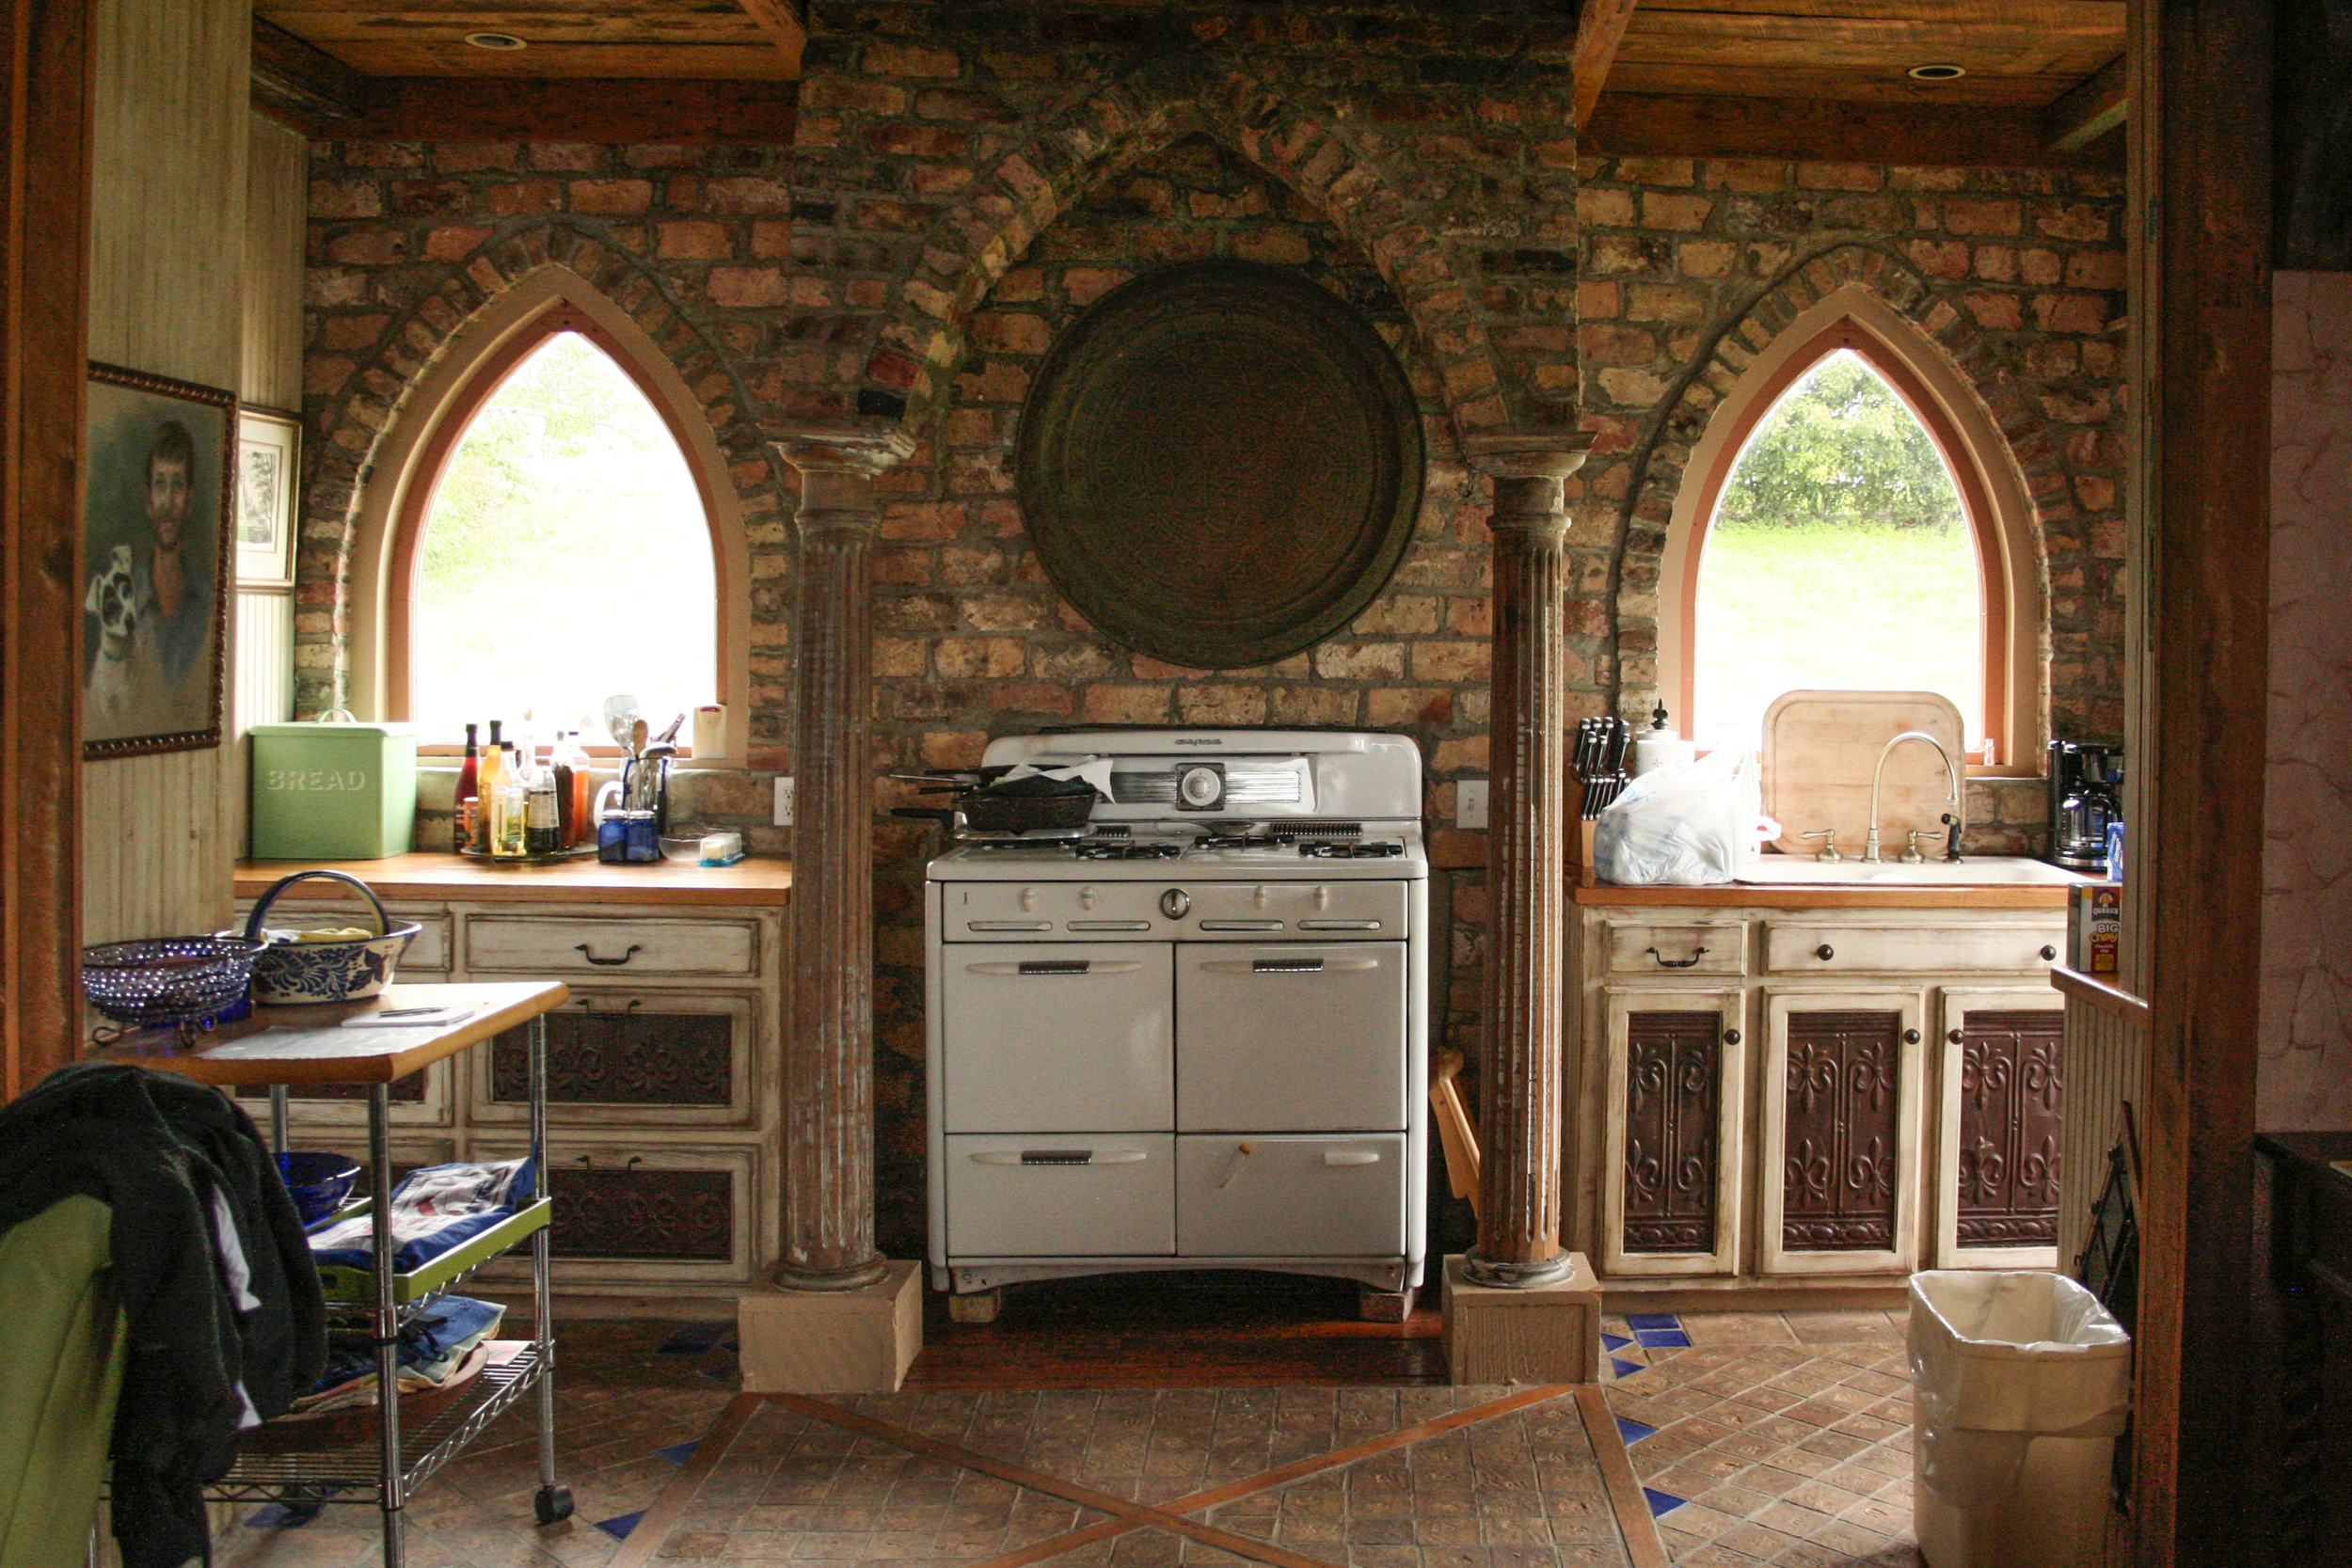 THIS IS THE REALLY COOL KITCHEN INSIDE OUR CABIN.